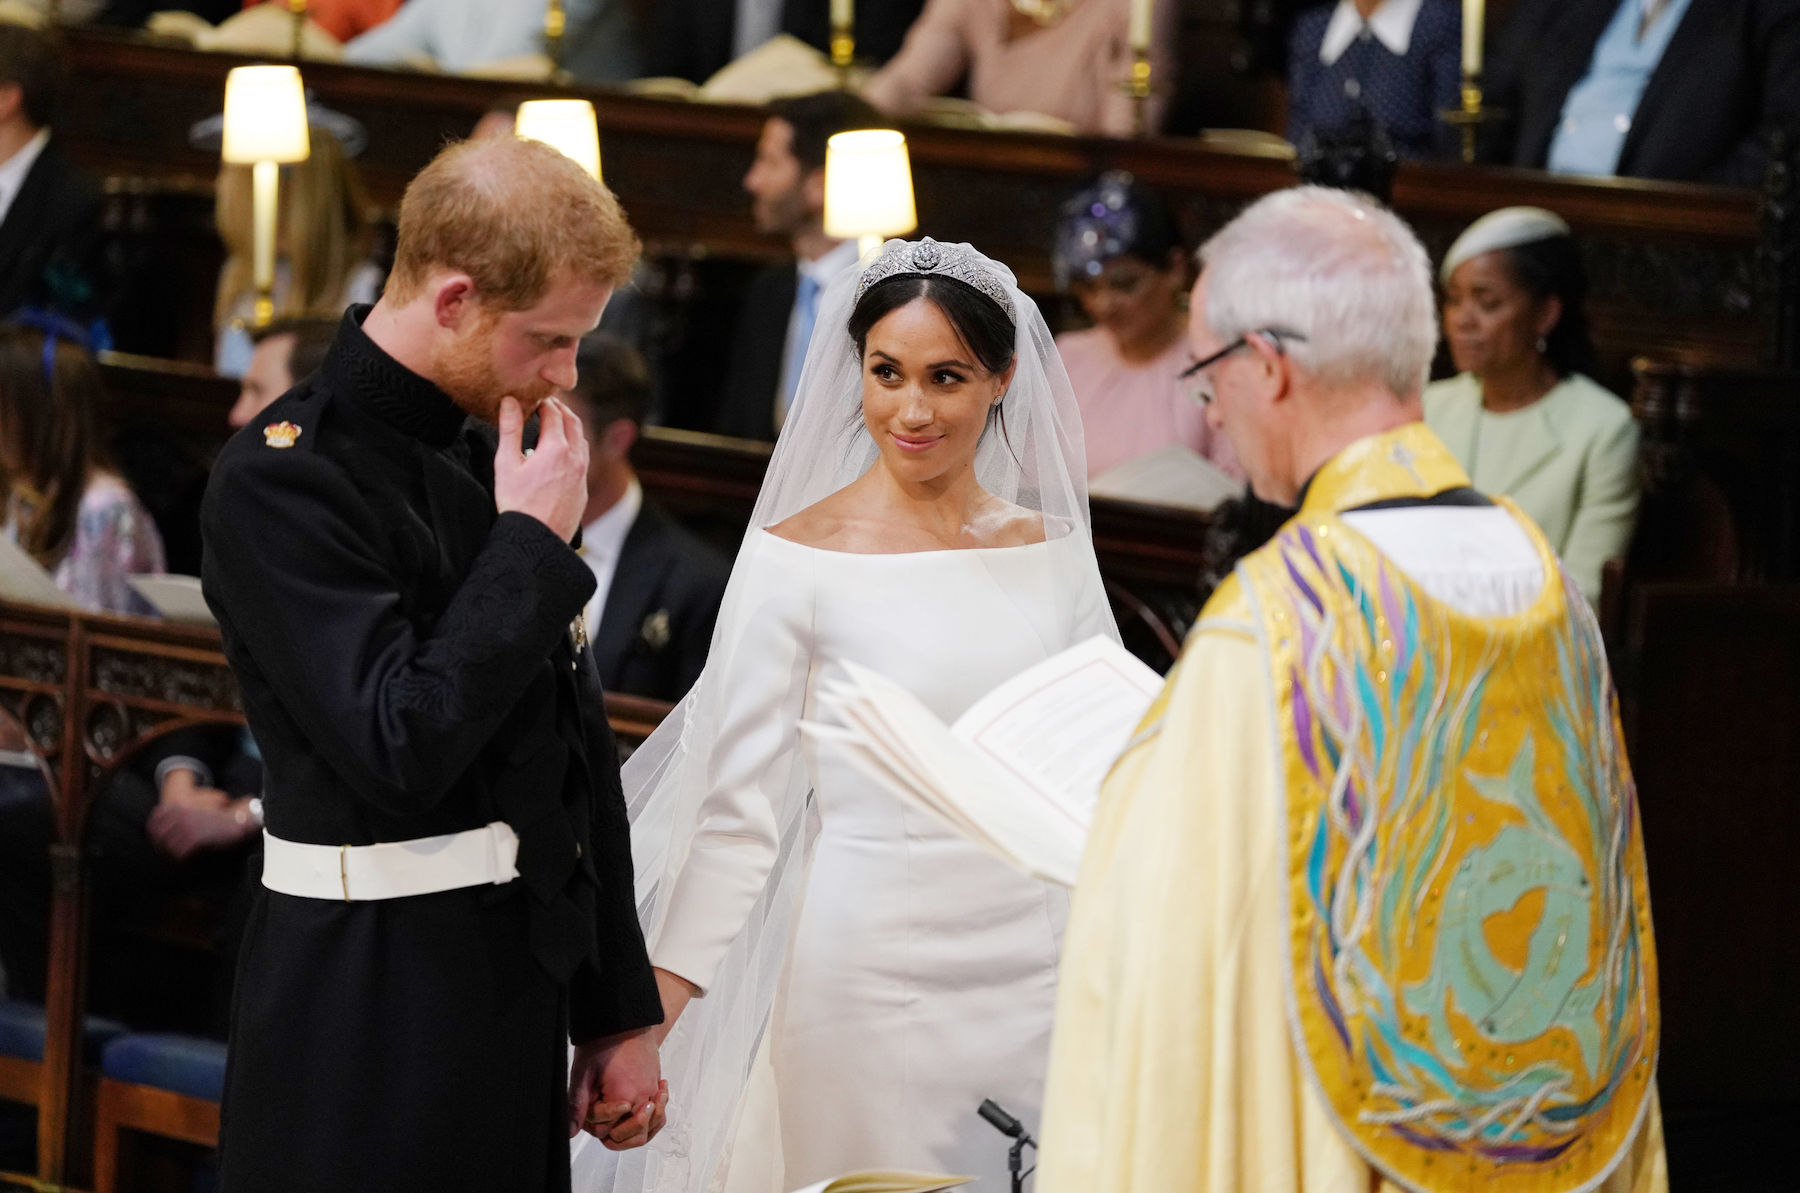 "<div class=""meta image-caption""><div class=""origin-logo origin-image wls""><span>wls</span></div><span class=""caption-text"">Prince Harry and Meghan Markle during their wedding service, conducted by the Archbishop of Canterbury Justin Welby in St George's Chapel. (WPA Pool/Getty Images)</span></div>"